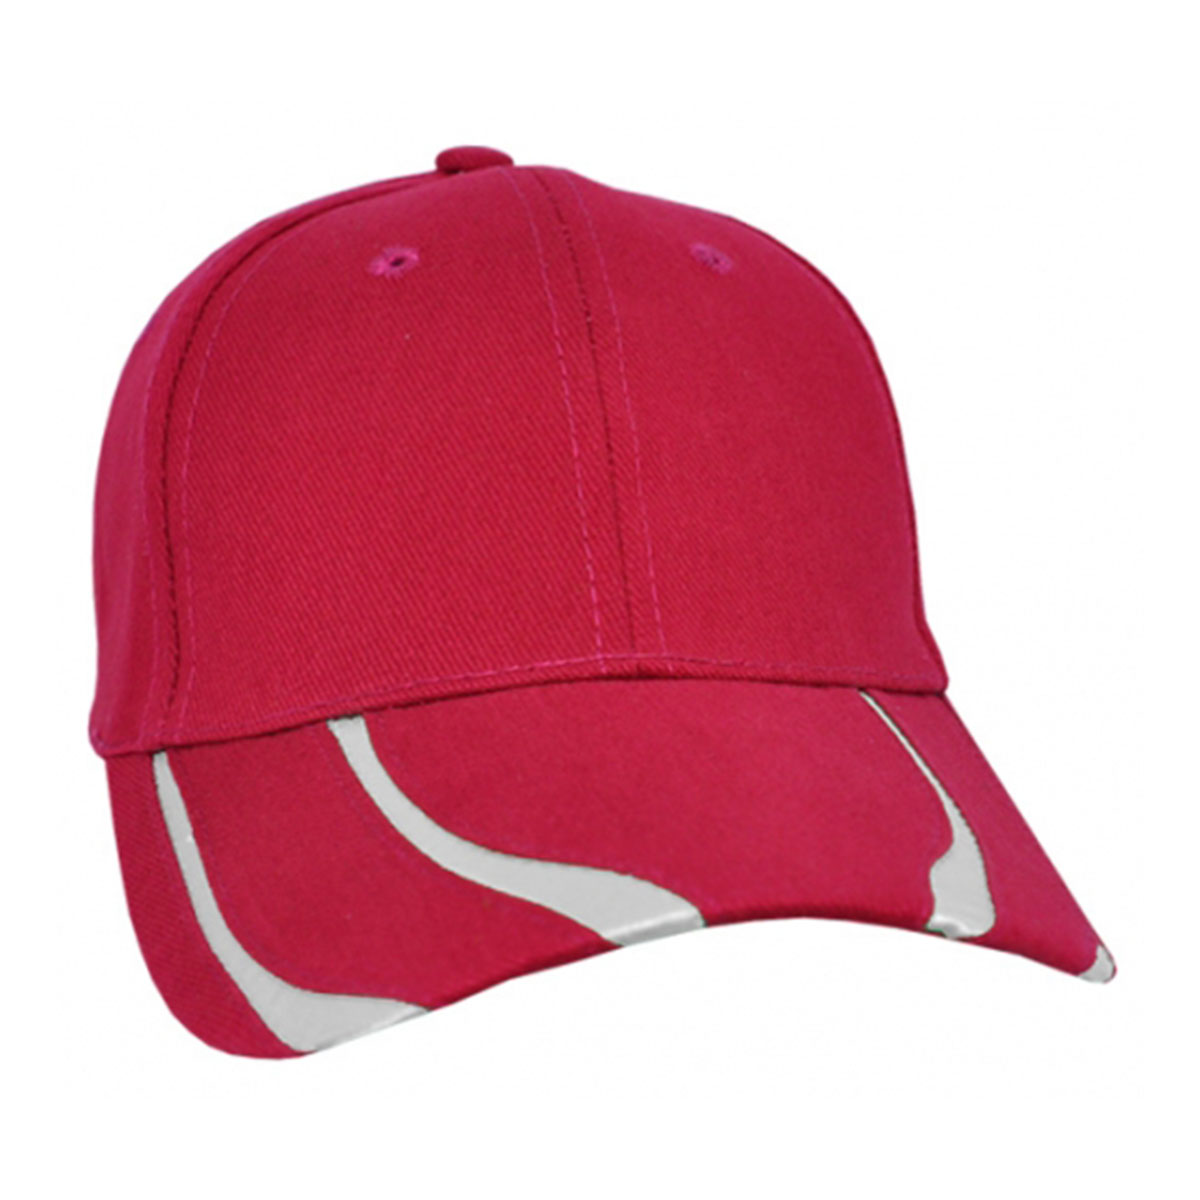 Striker Cap-Red / White